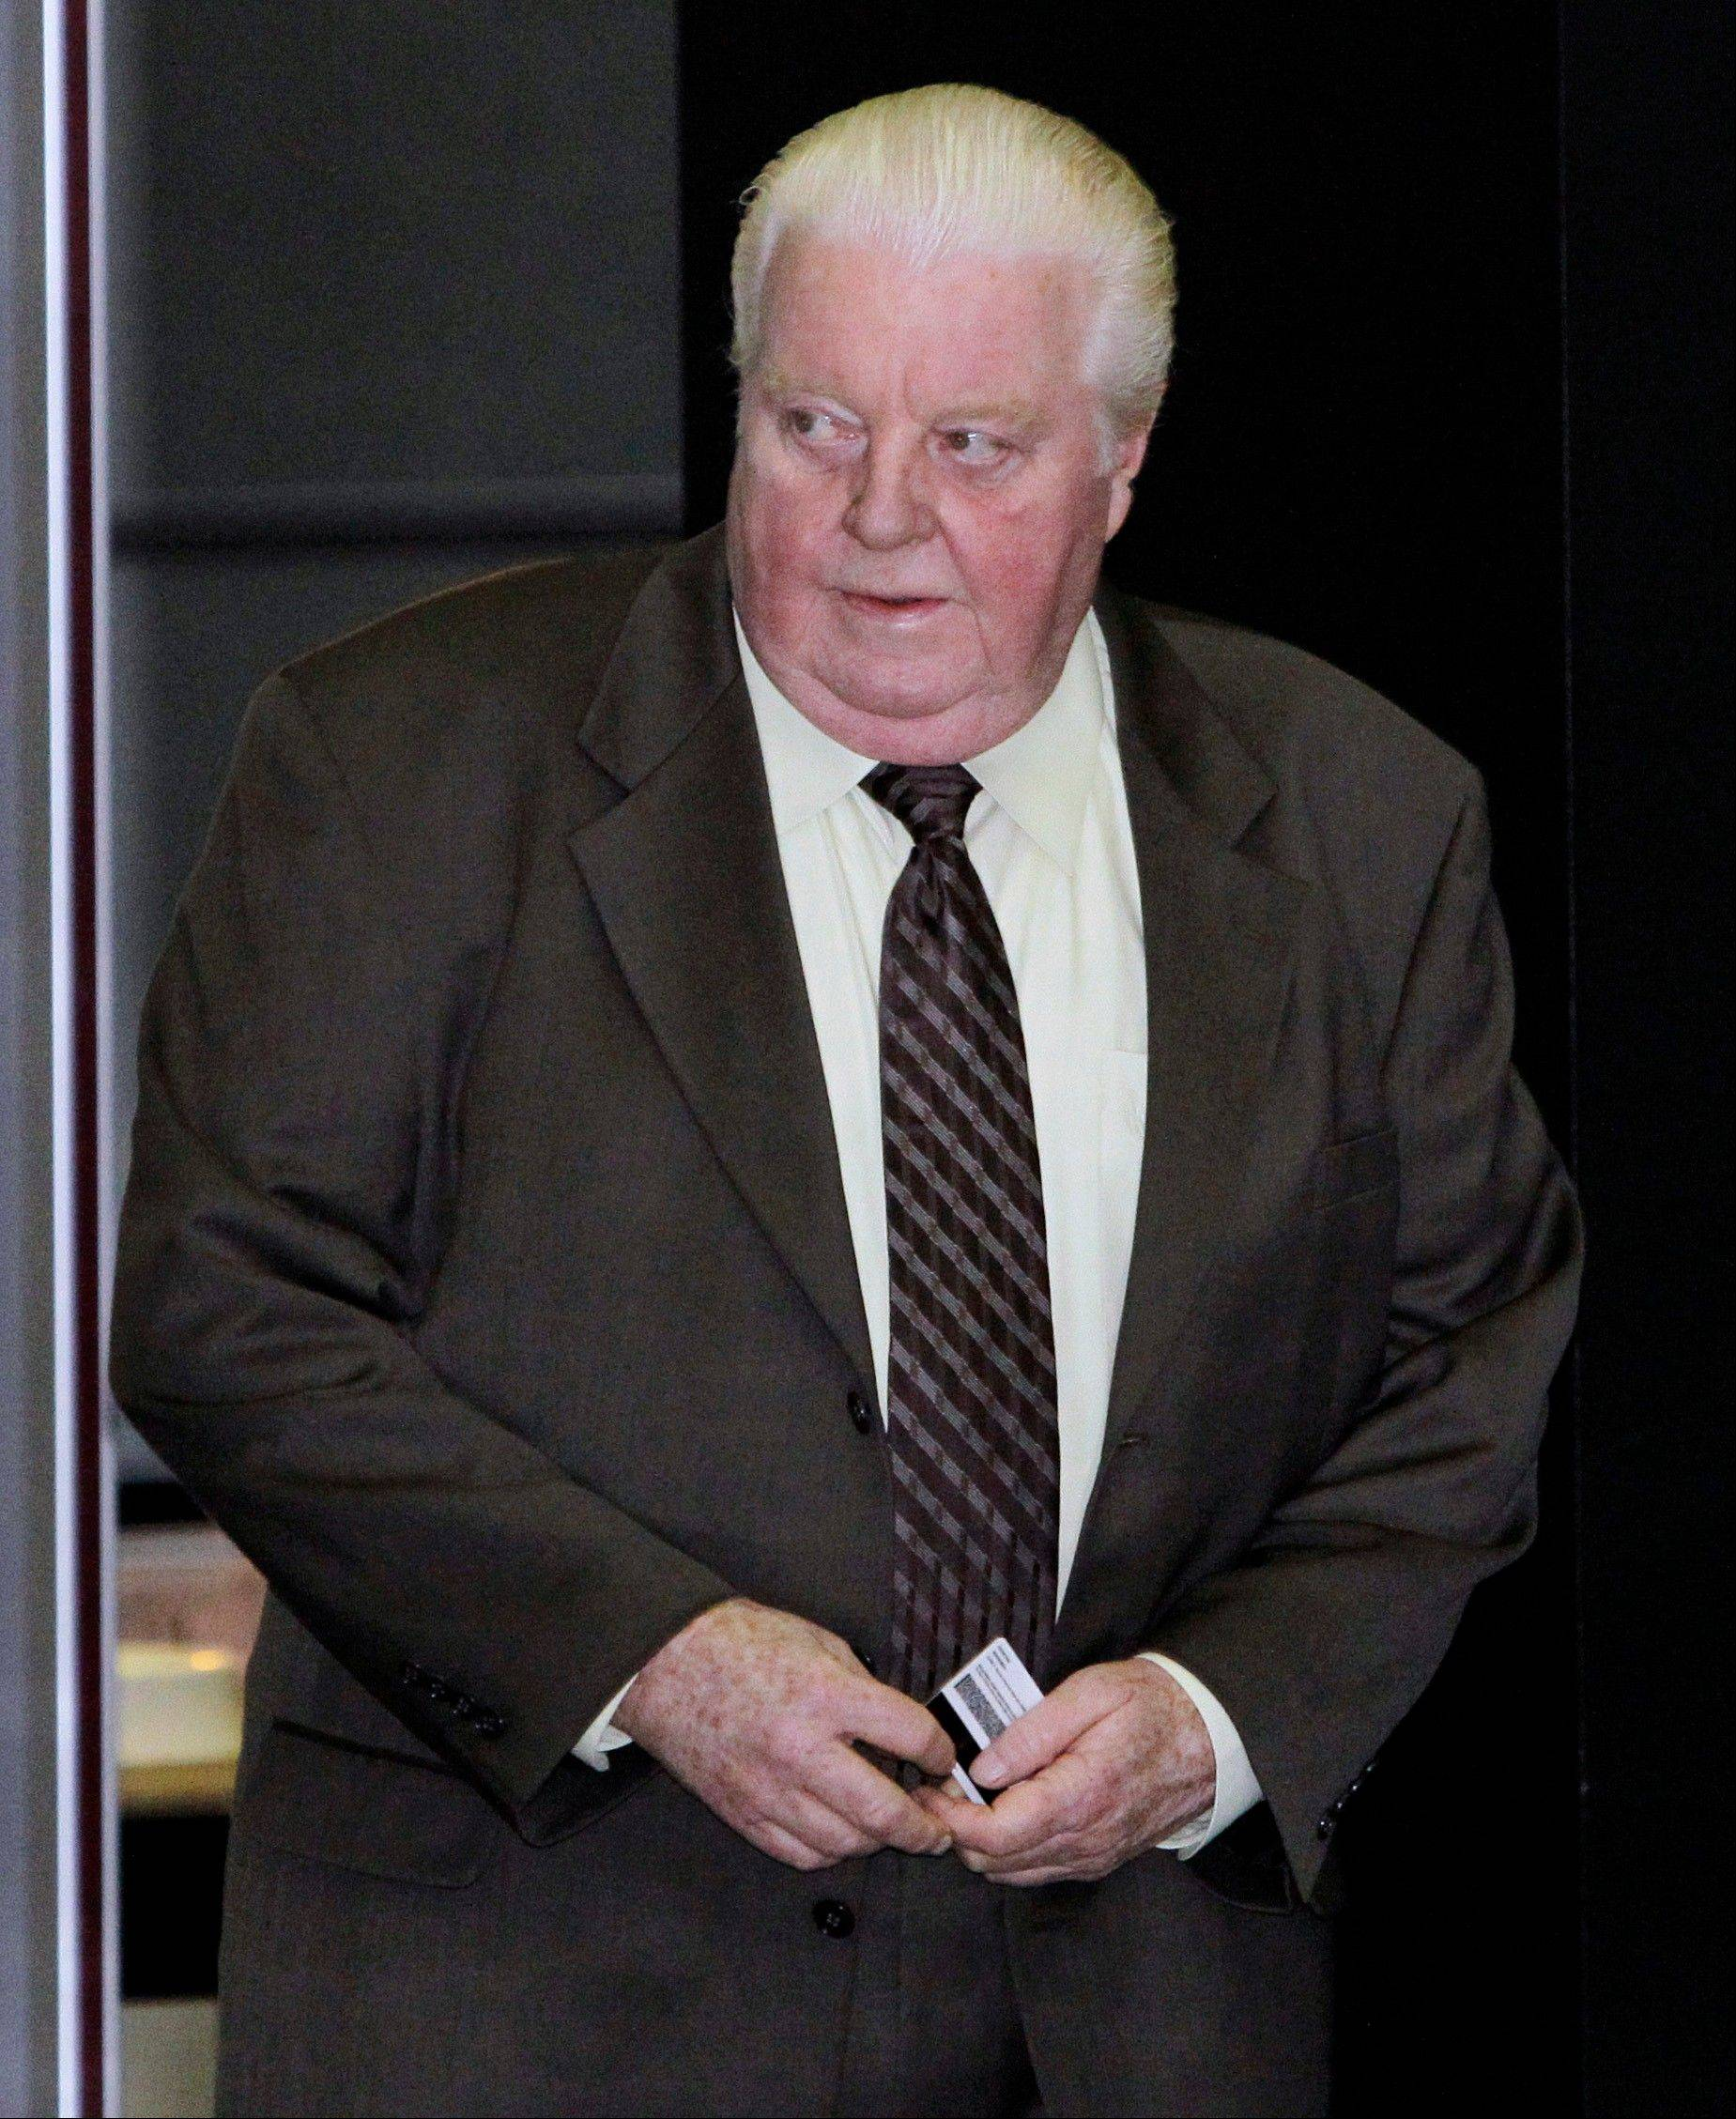 Former Chicago Police Lt. Jon Burge was convicted in 2010 of lying about the torture of suspects decades ago.